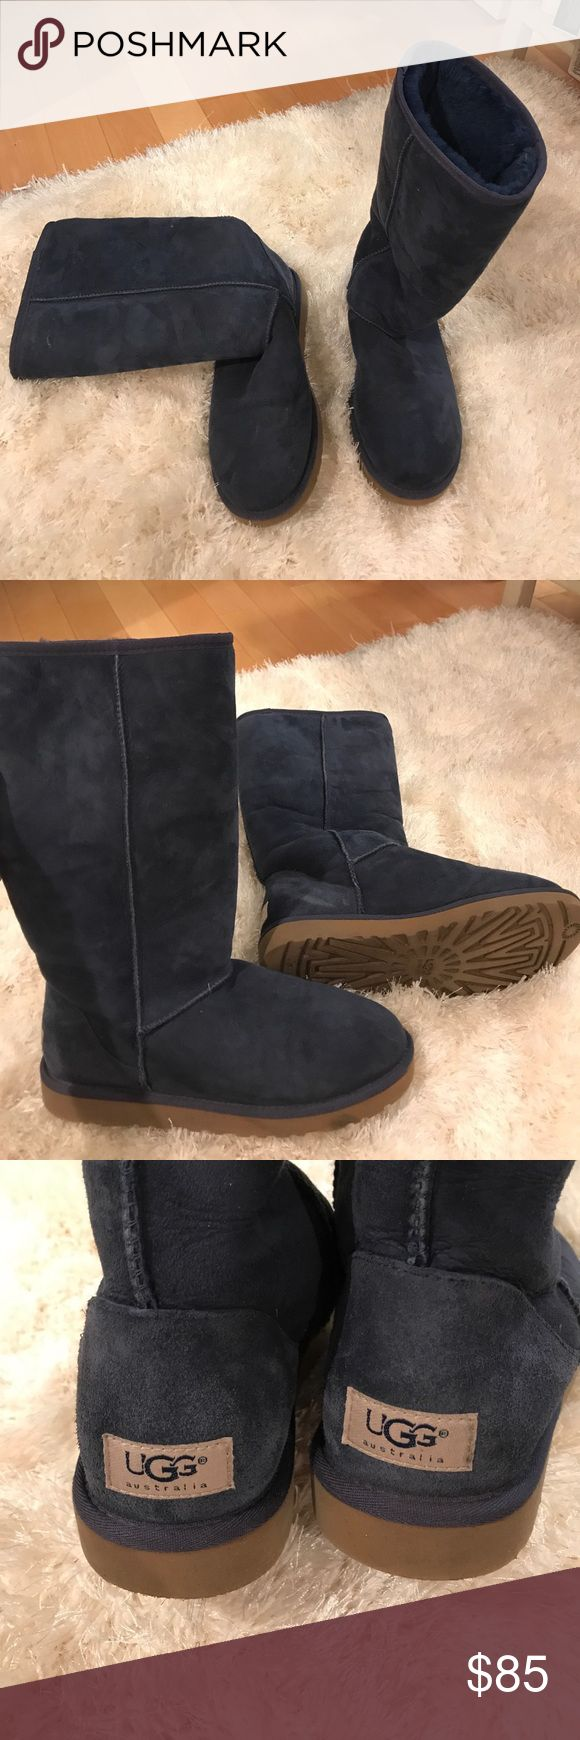 Tall navy blue uggs Tall navy blue uggs. Very good condition UGG Shoes Winter & Rain Boots